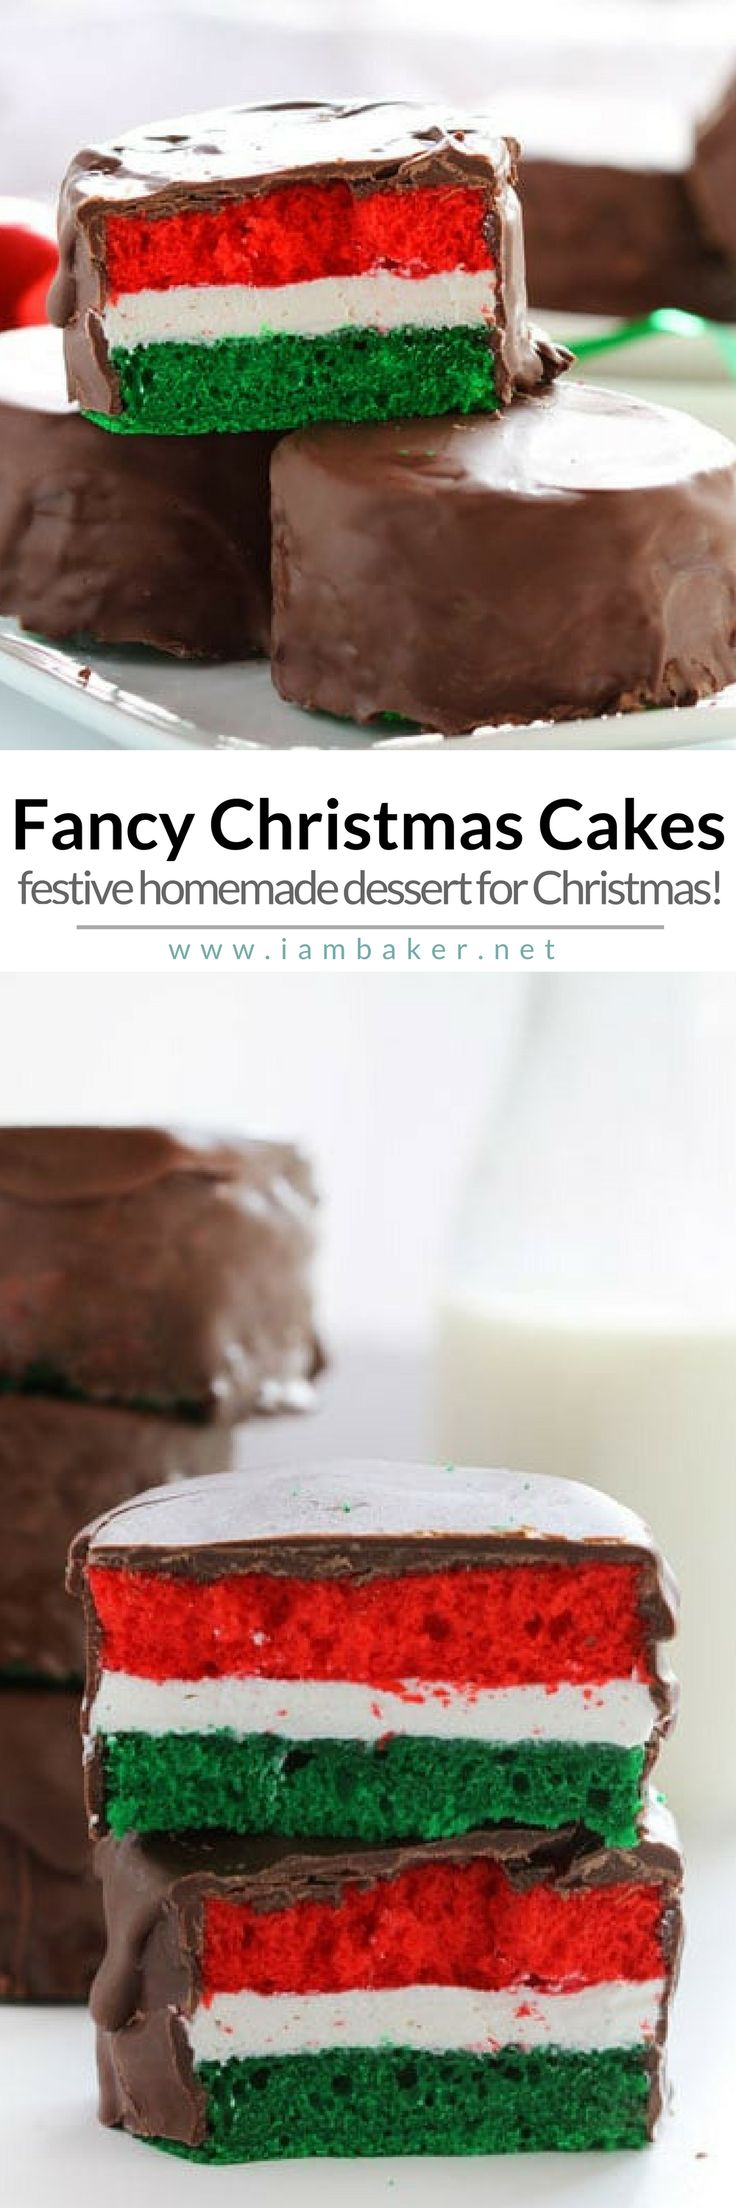 245 best Christmas images on Pinterest | Christmas sweets, Christmas ...